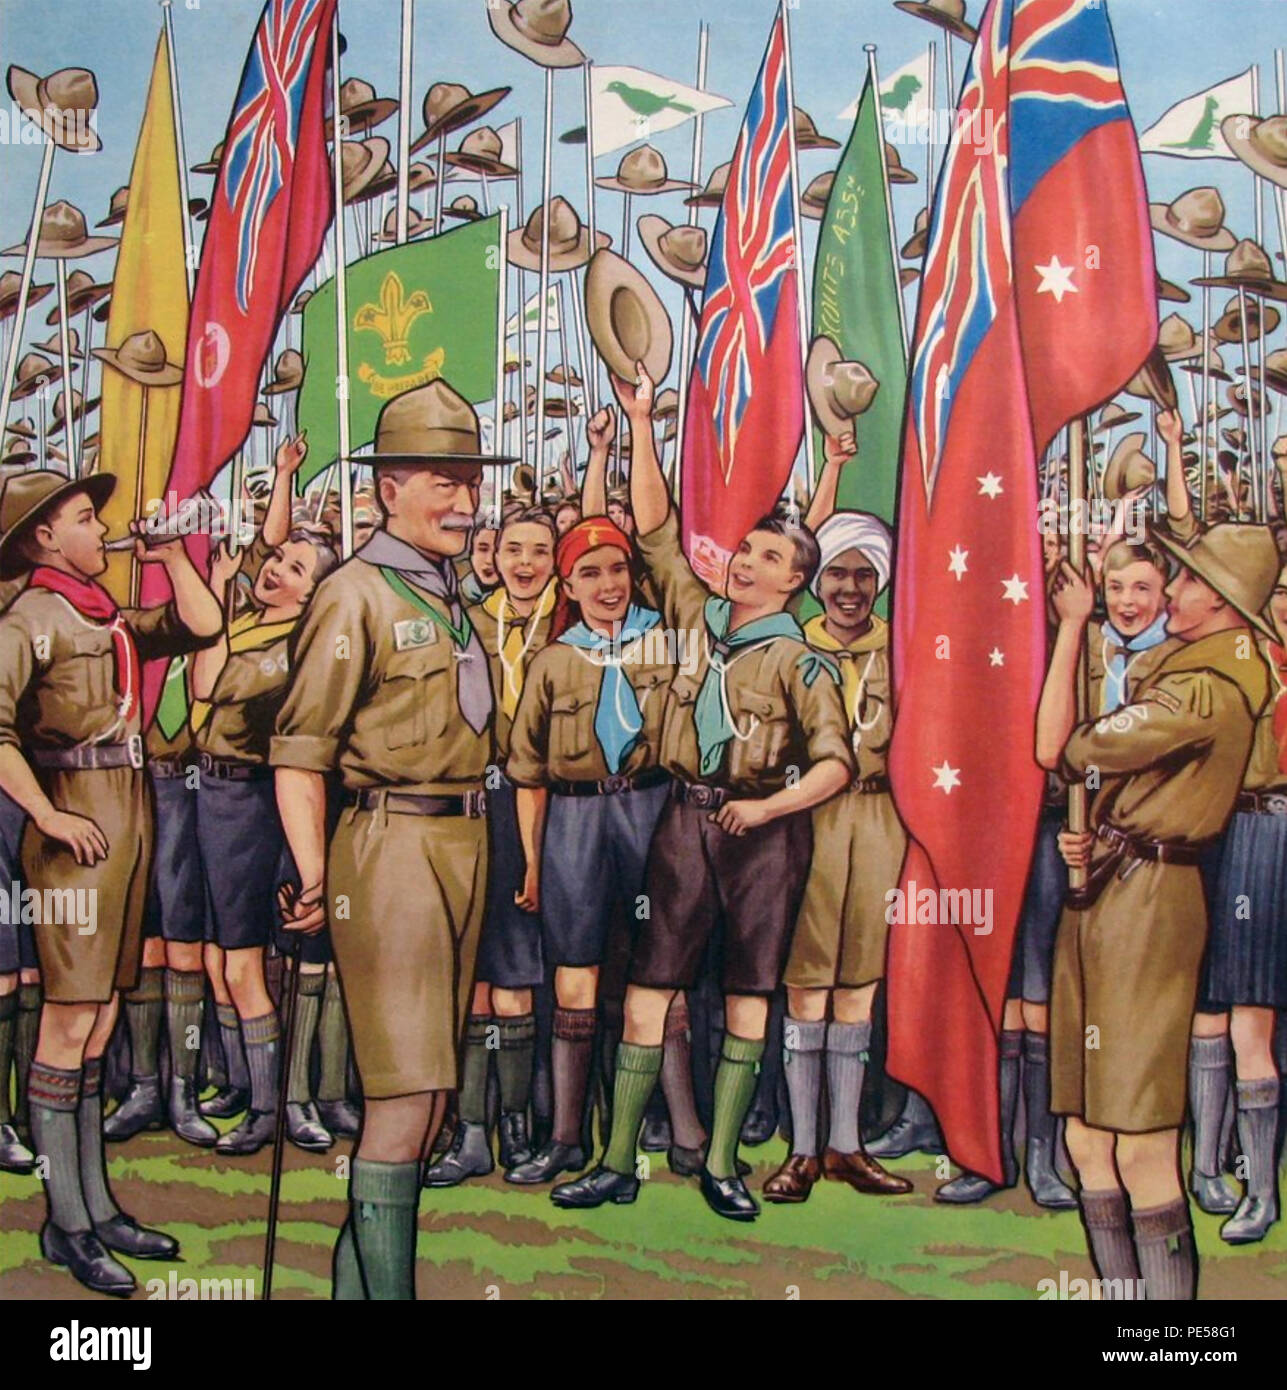 SCOUT JAMBOREE illustration about 1920 showing Baden-Powell - Stock Image